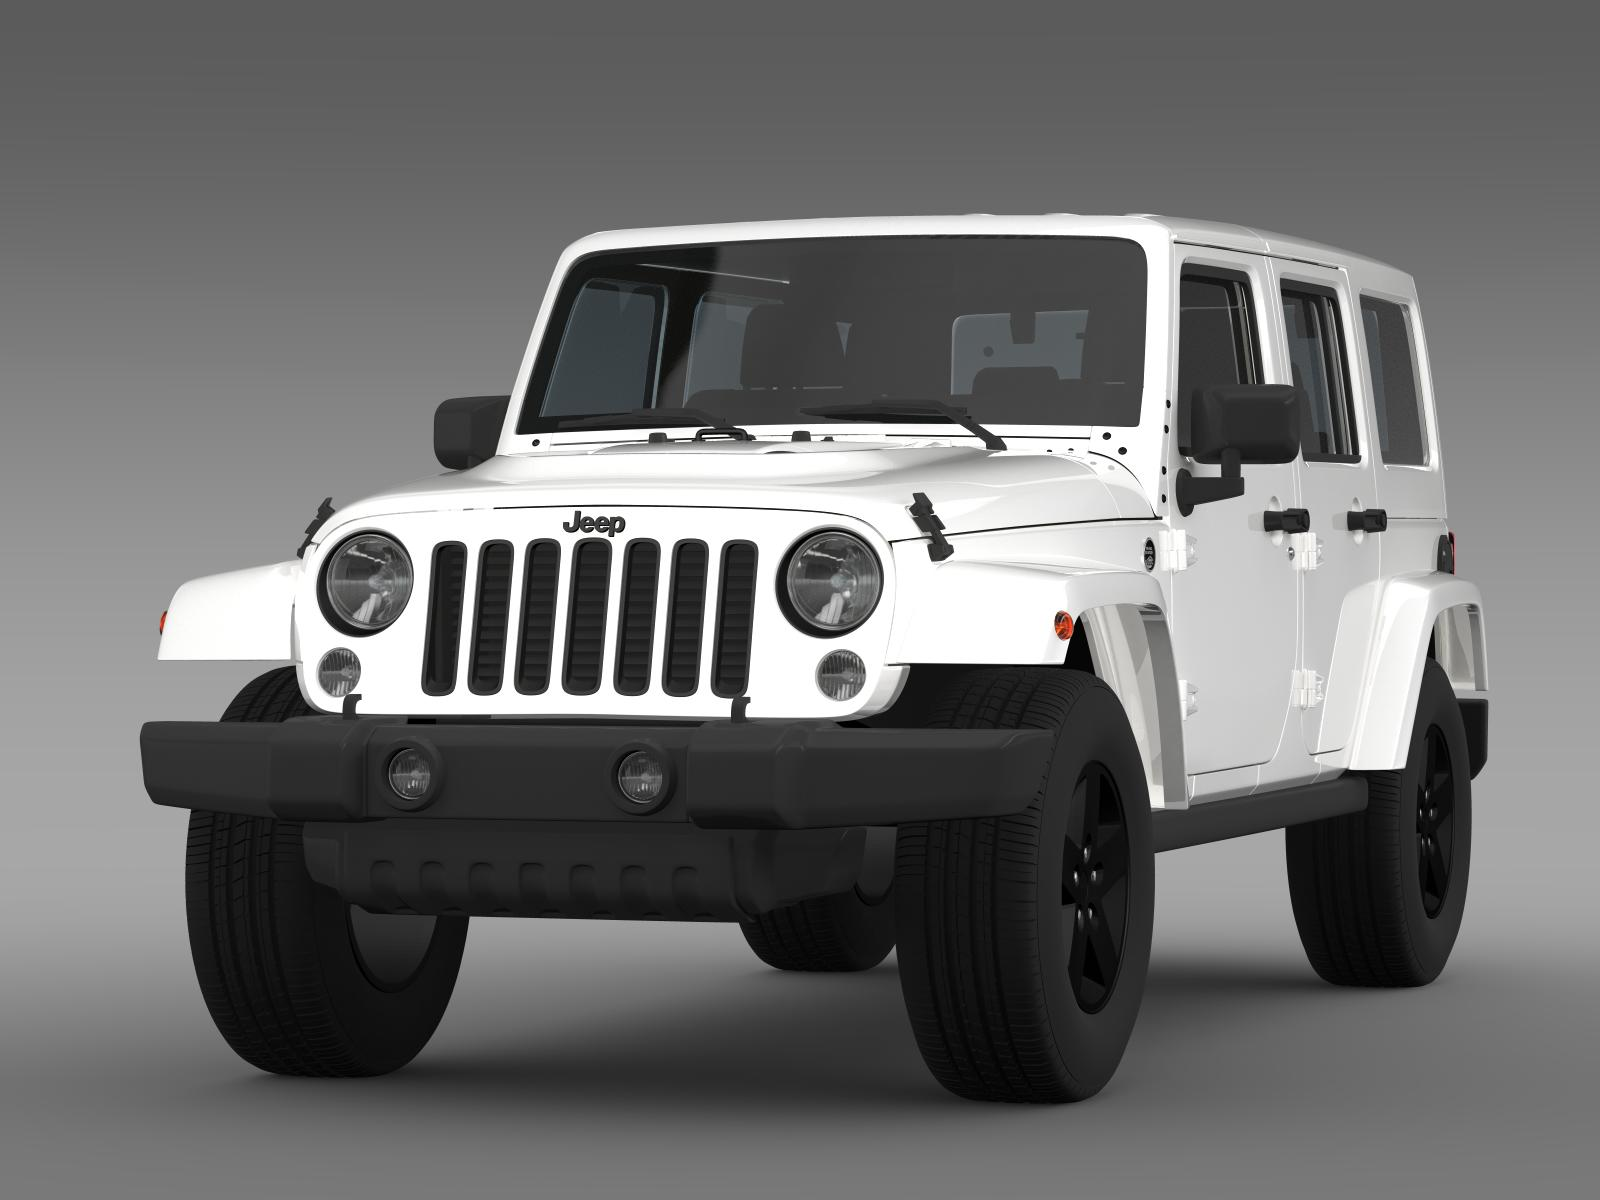 jeep wrangler unlimited x 2015 3d model buy jeep wrangler unlimited x 2015 3d model flatpyramid. Black Bedroom Furniture Sets. Home Design Ideas